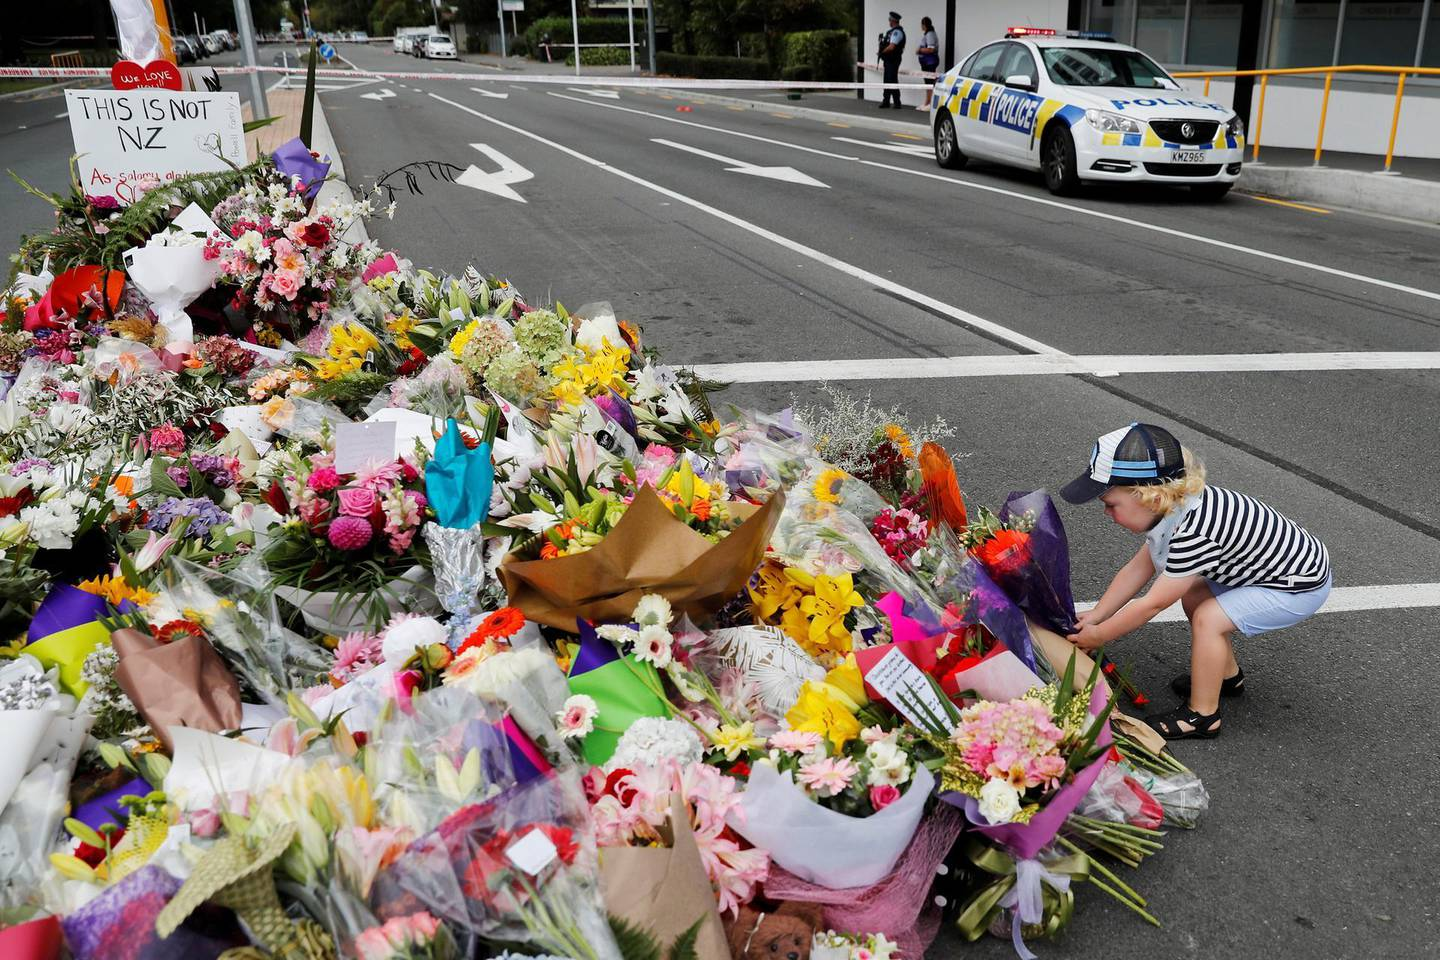 A boy places flowers at a memorial as a tribute to victims of the mosque attacks, near a police line outside Masjid Al Noor in Christchurch, New Zealand, March 16, 2019. REUTERS/Jorge Silva     TPX IMAGES OF THE DAY